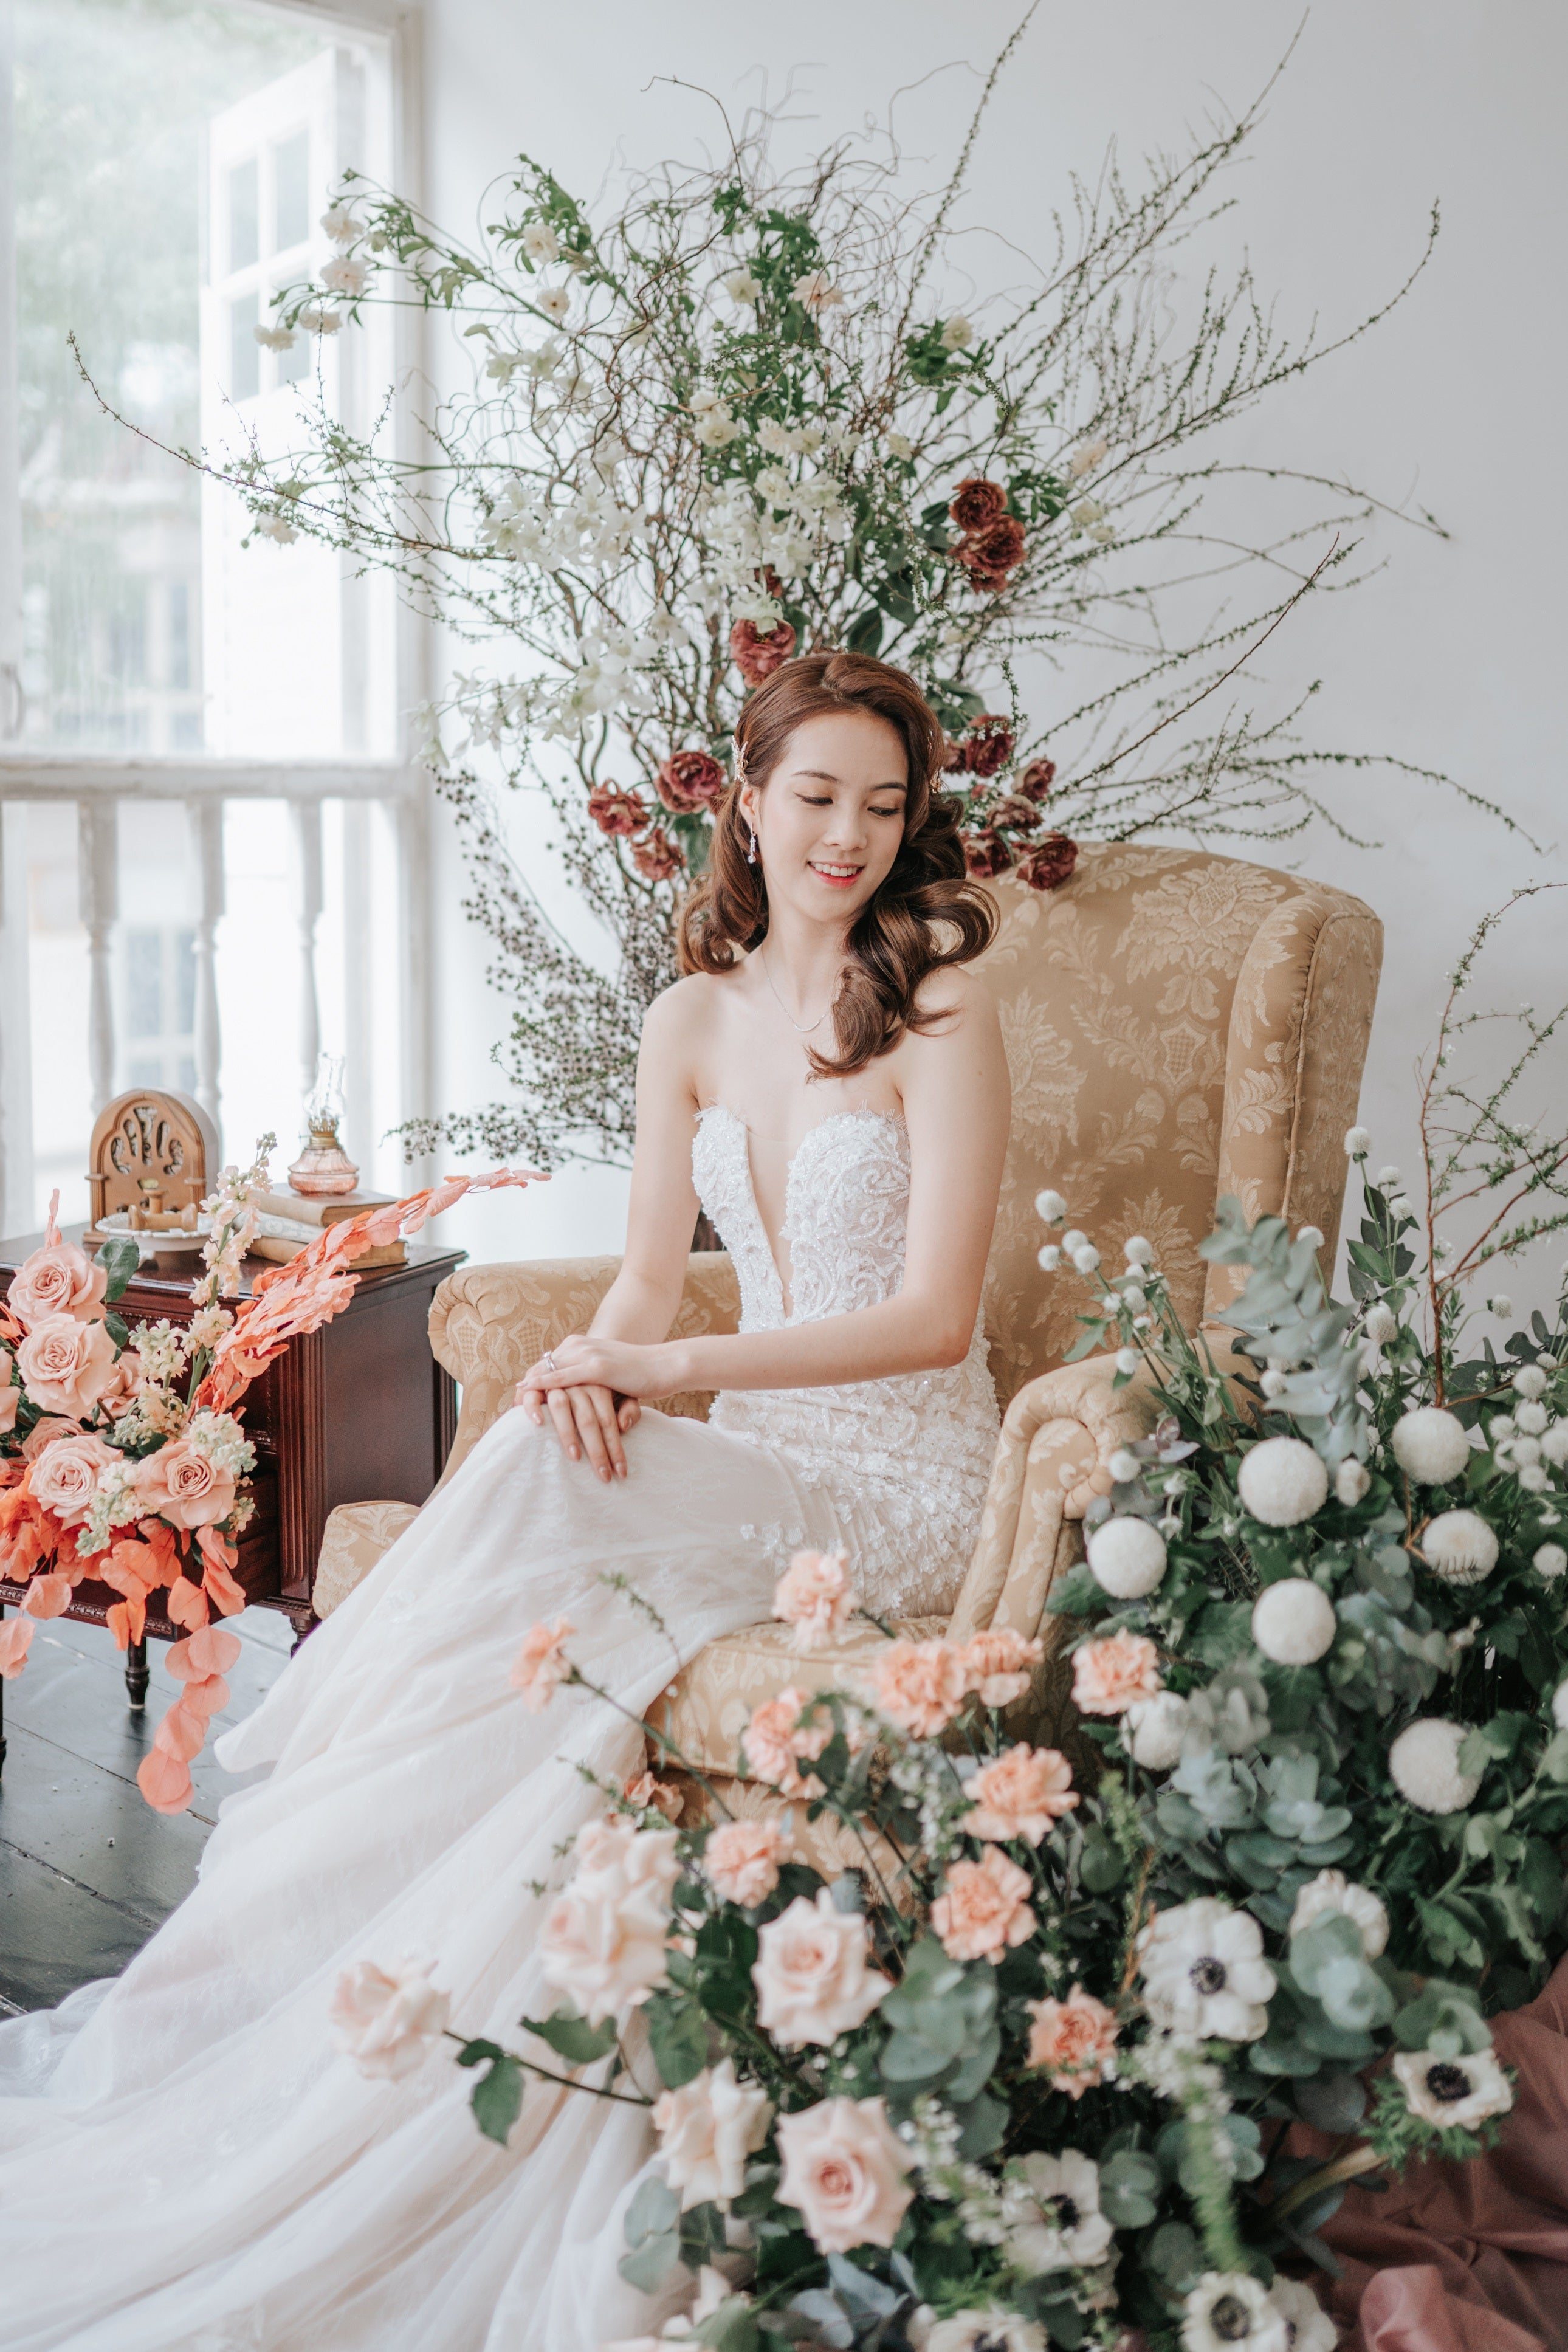 Bride sitting on an armchair surrounded by arranged brambles and flower installations with mainly eucalyptus